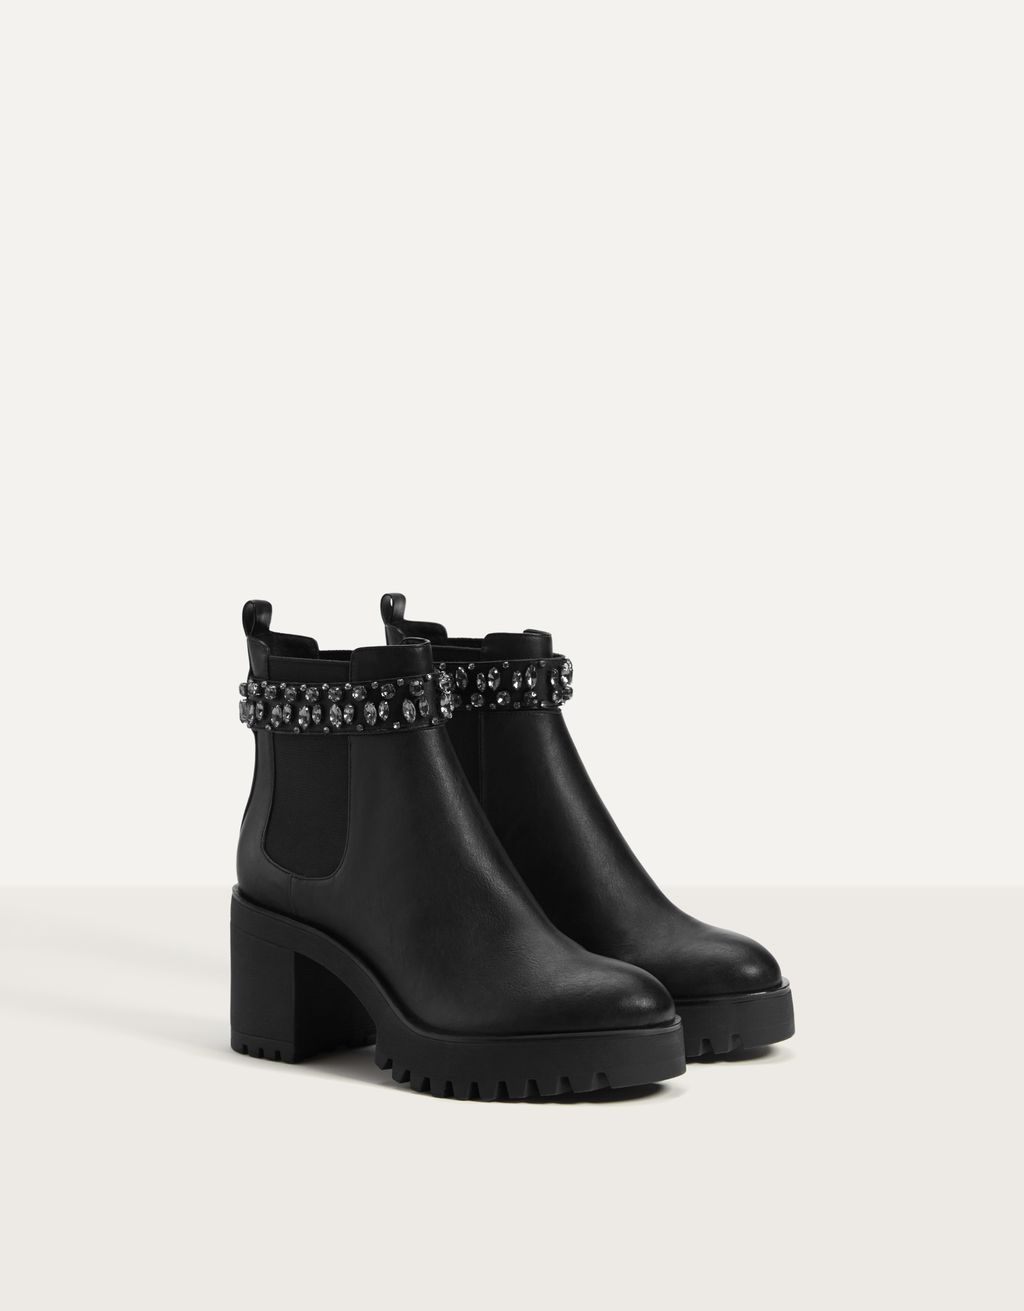 High Heel Ankle Boots With Stretchy Side Gores And Rhinestones by Bershka